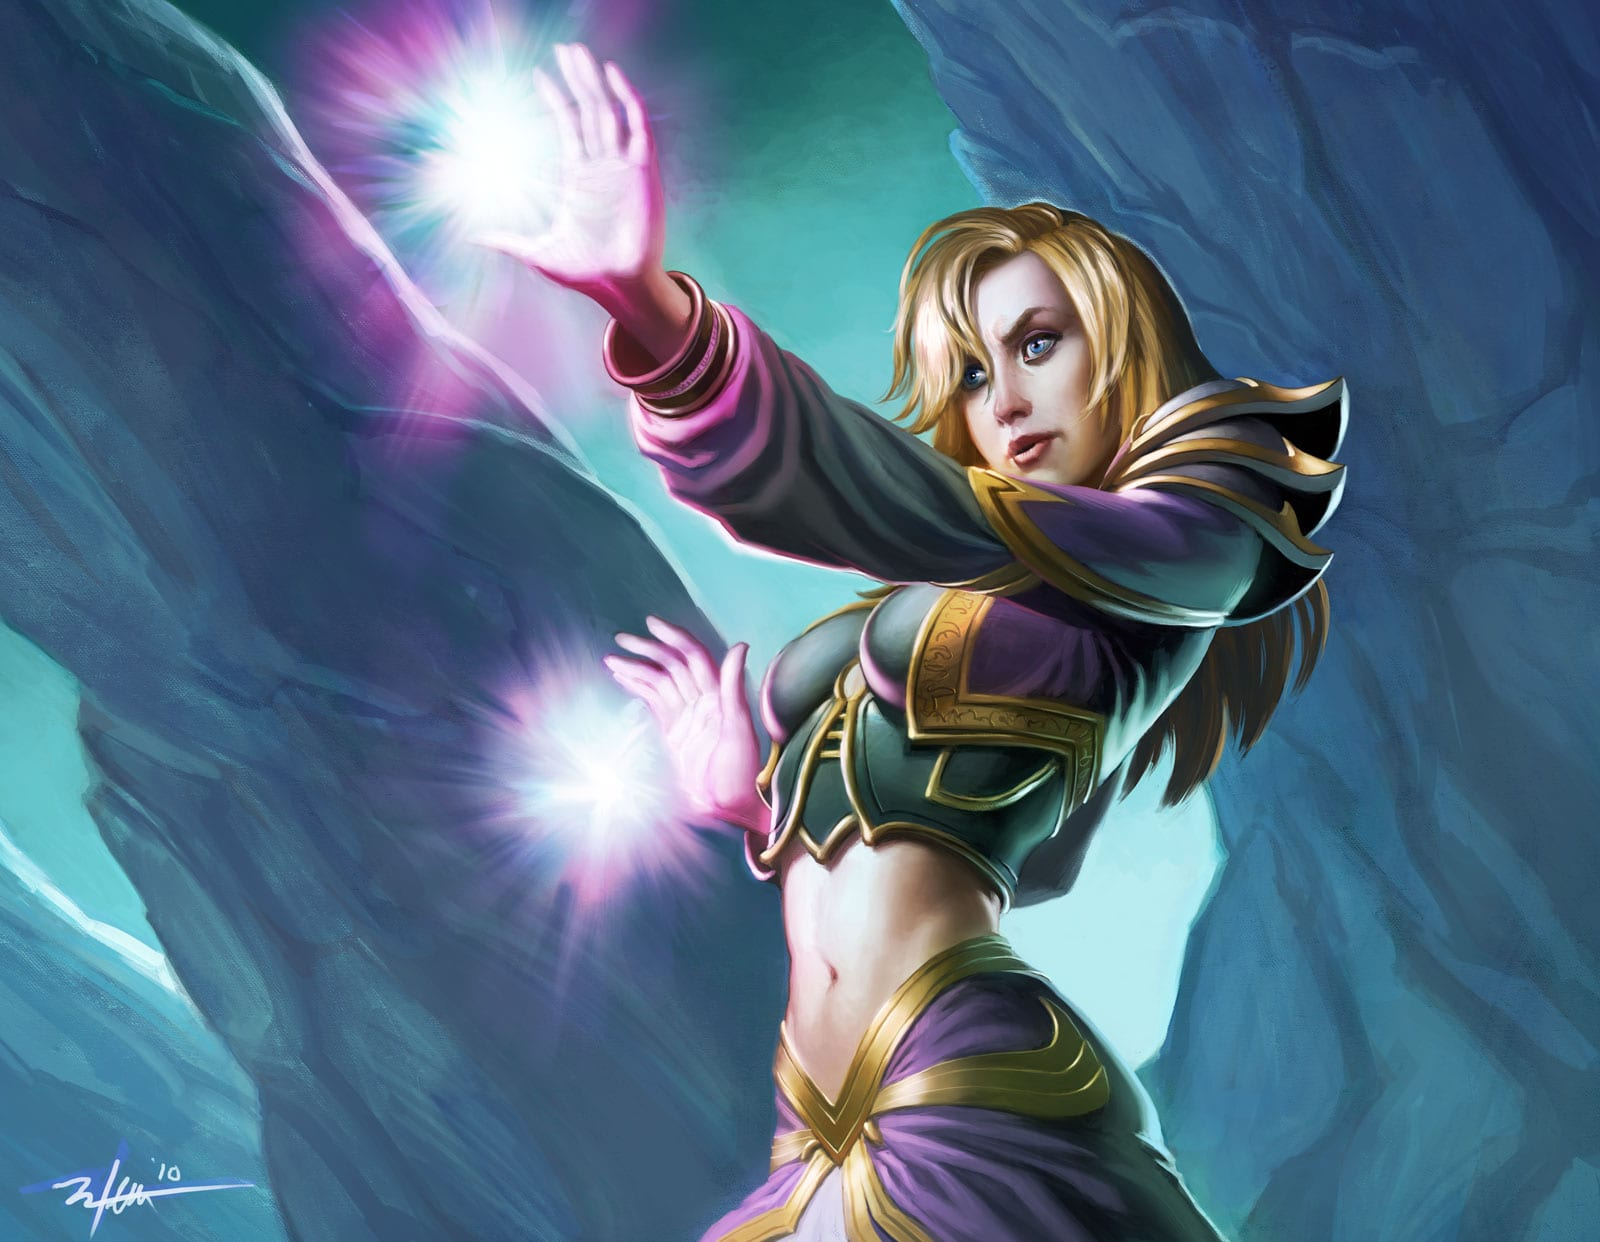 Jaina exploited galleries